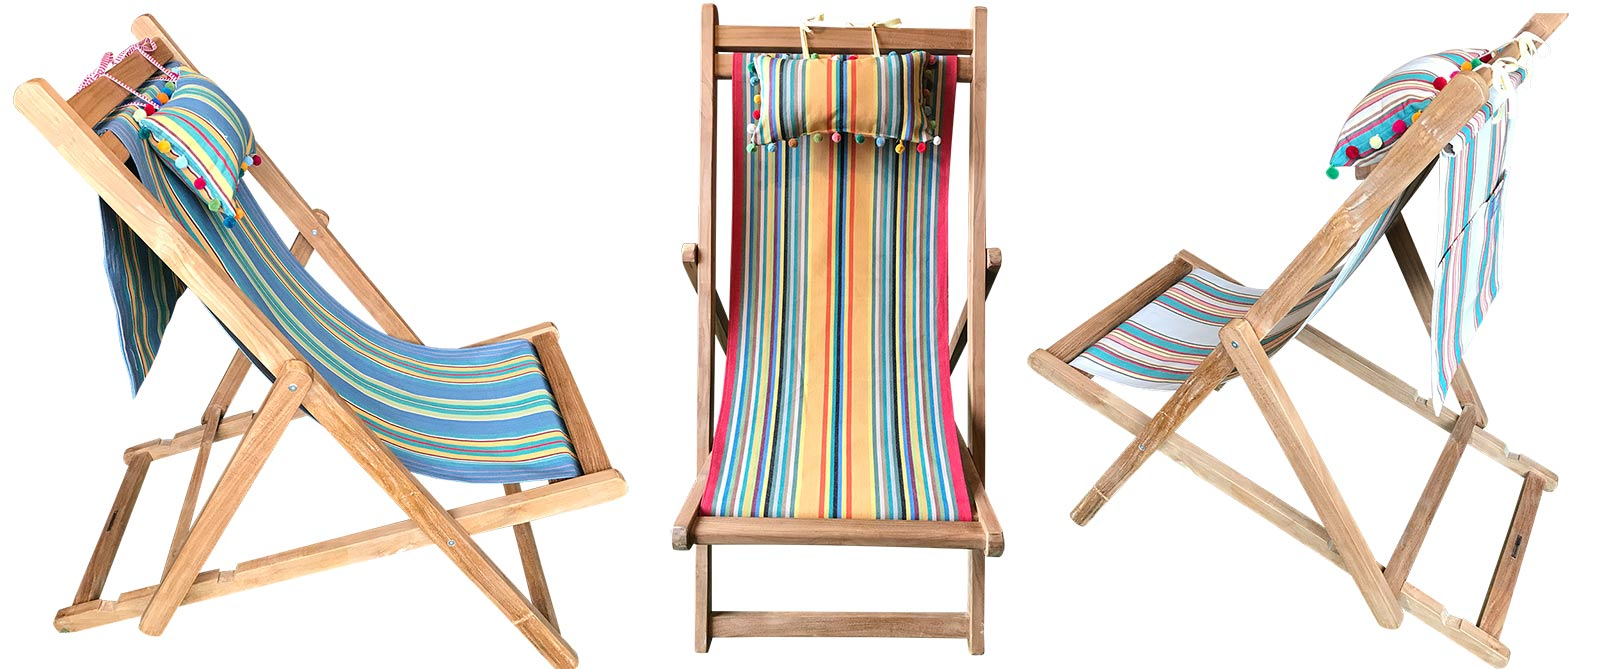 Teak Deckchair with Headrest and Pockets